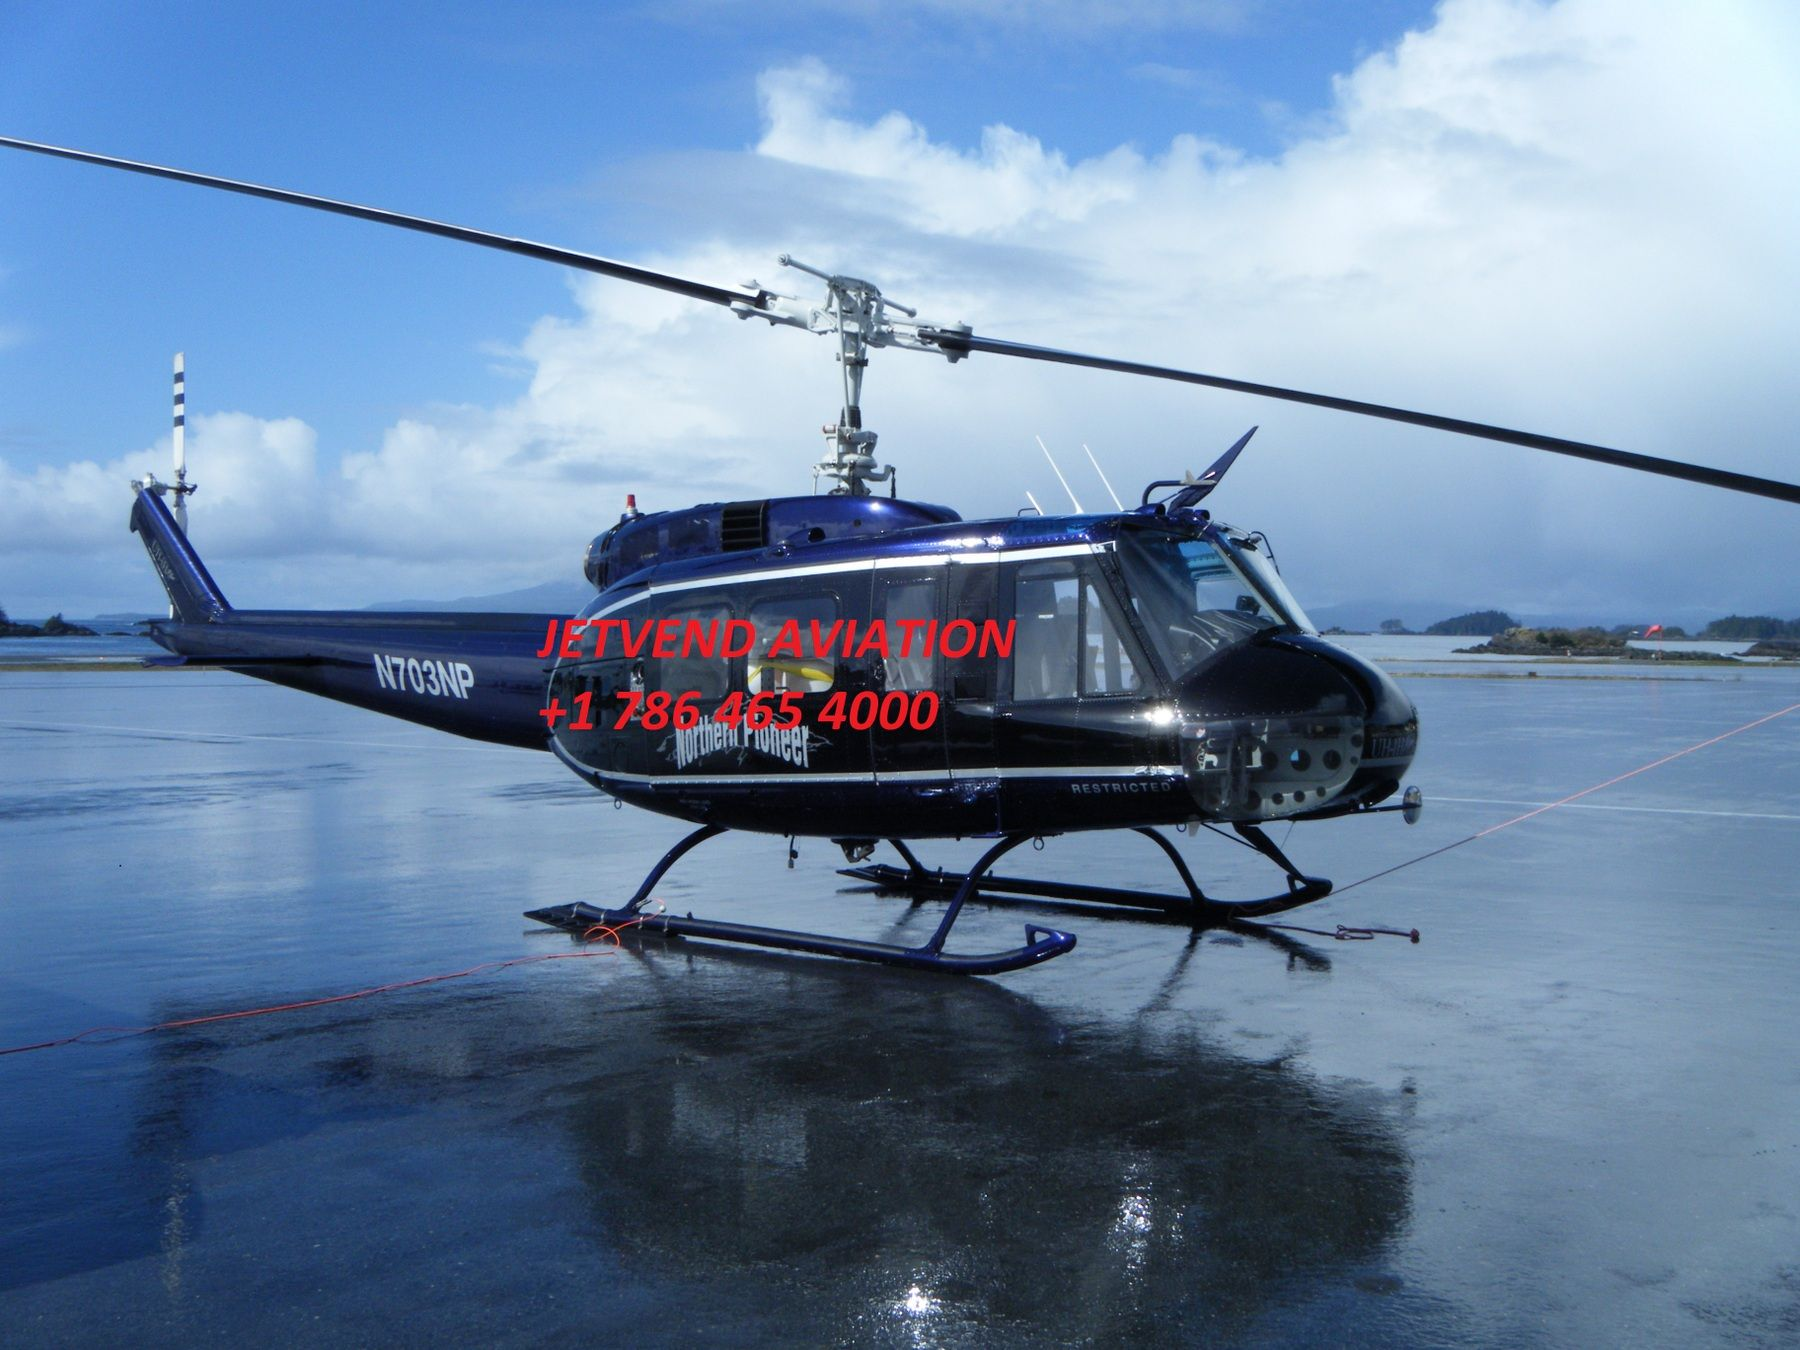 1969 bell uh1h huey for sale by jetvend aviation llc details http